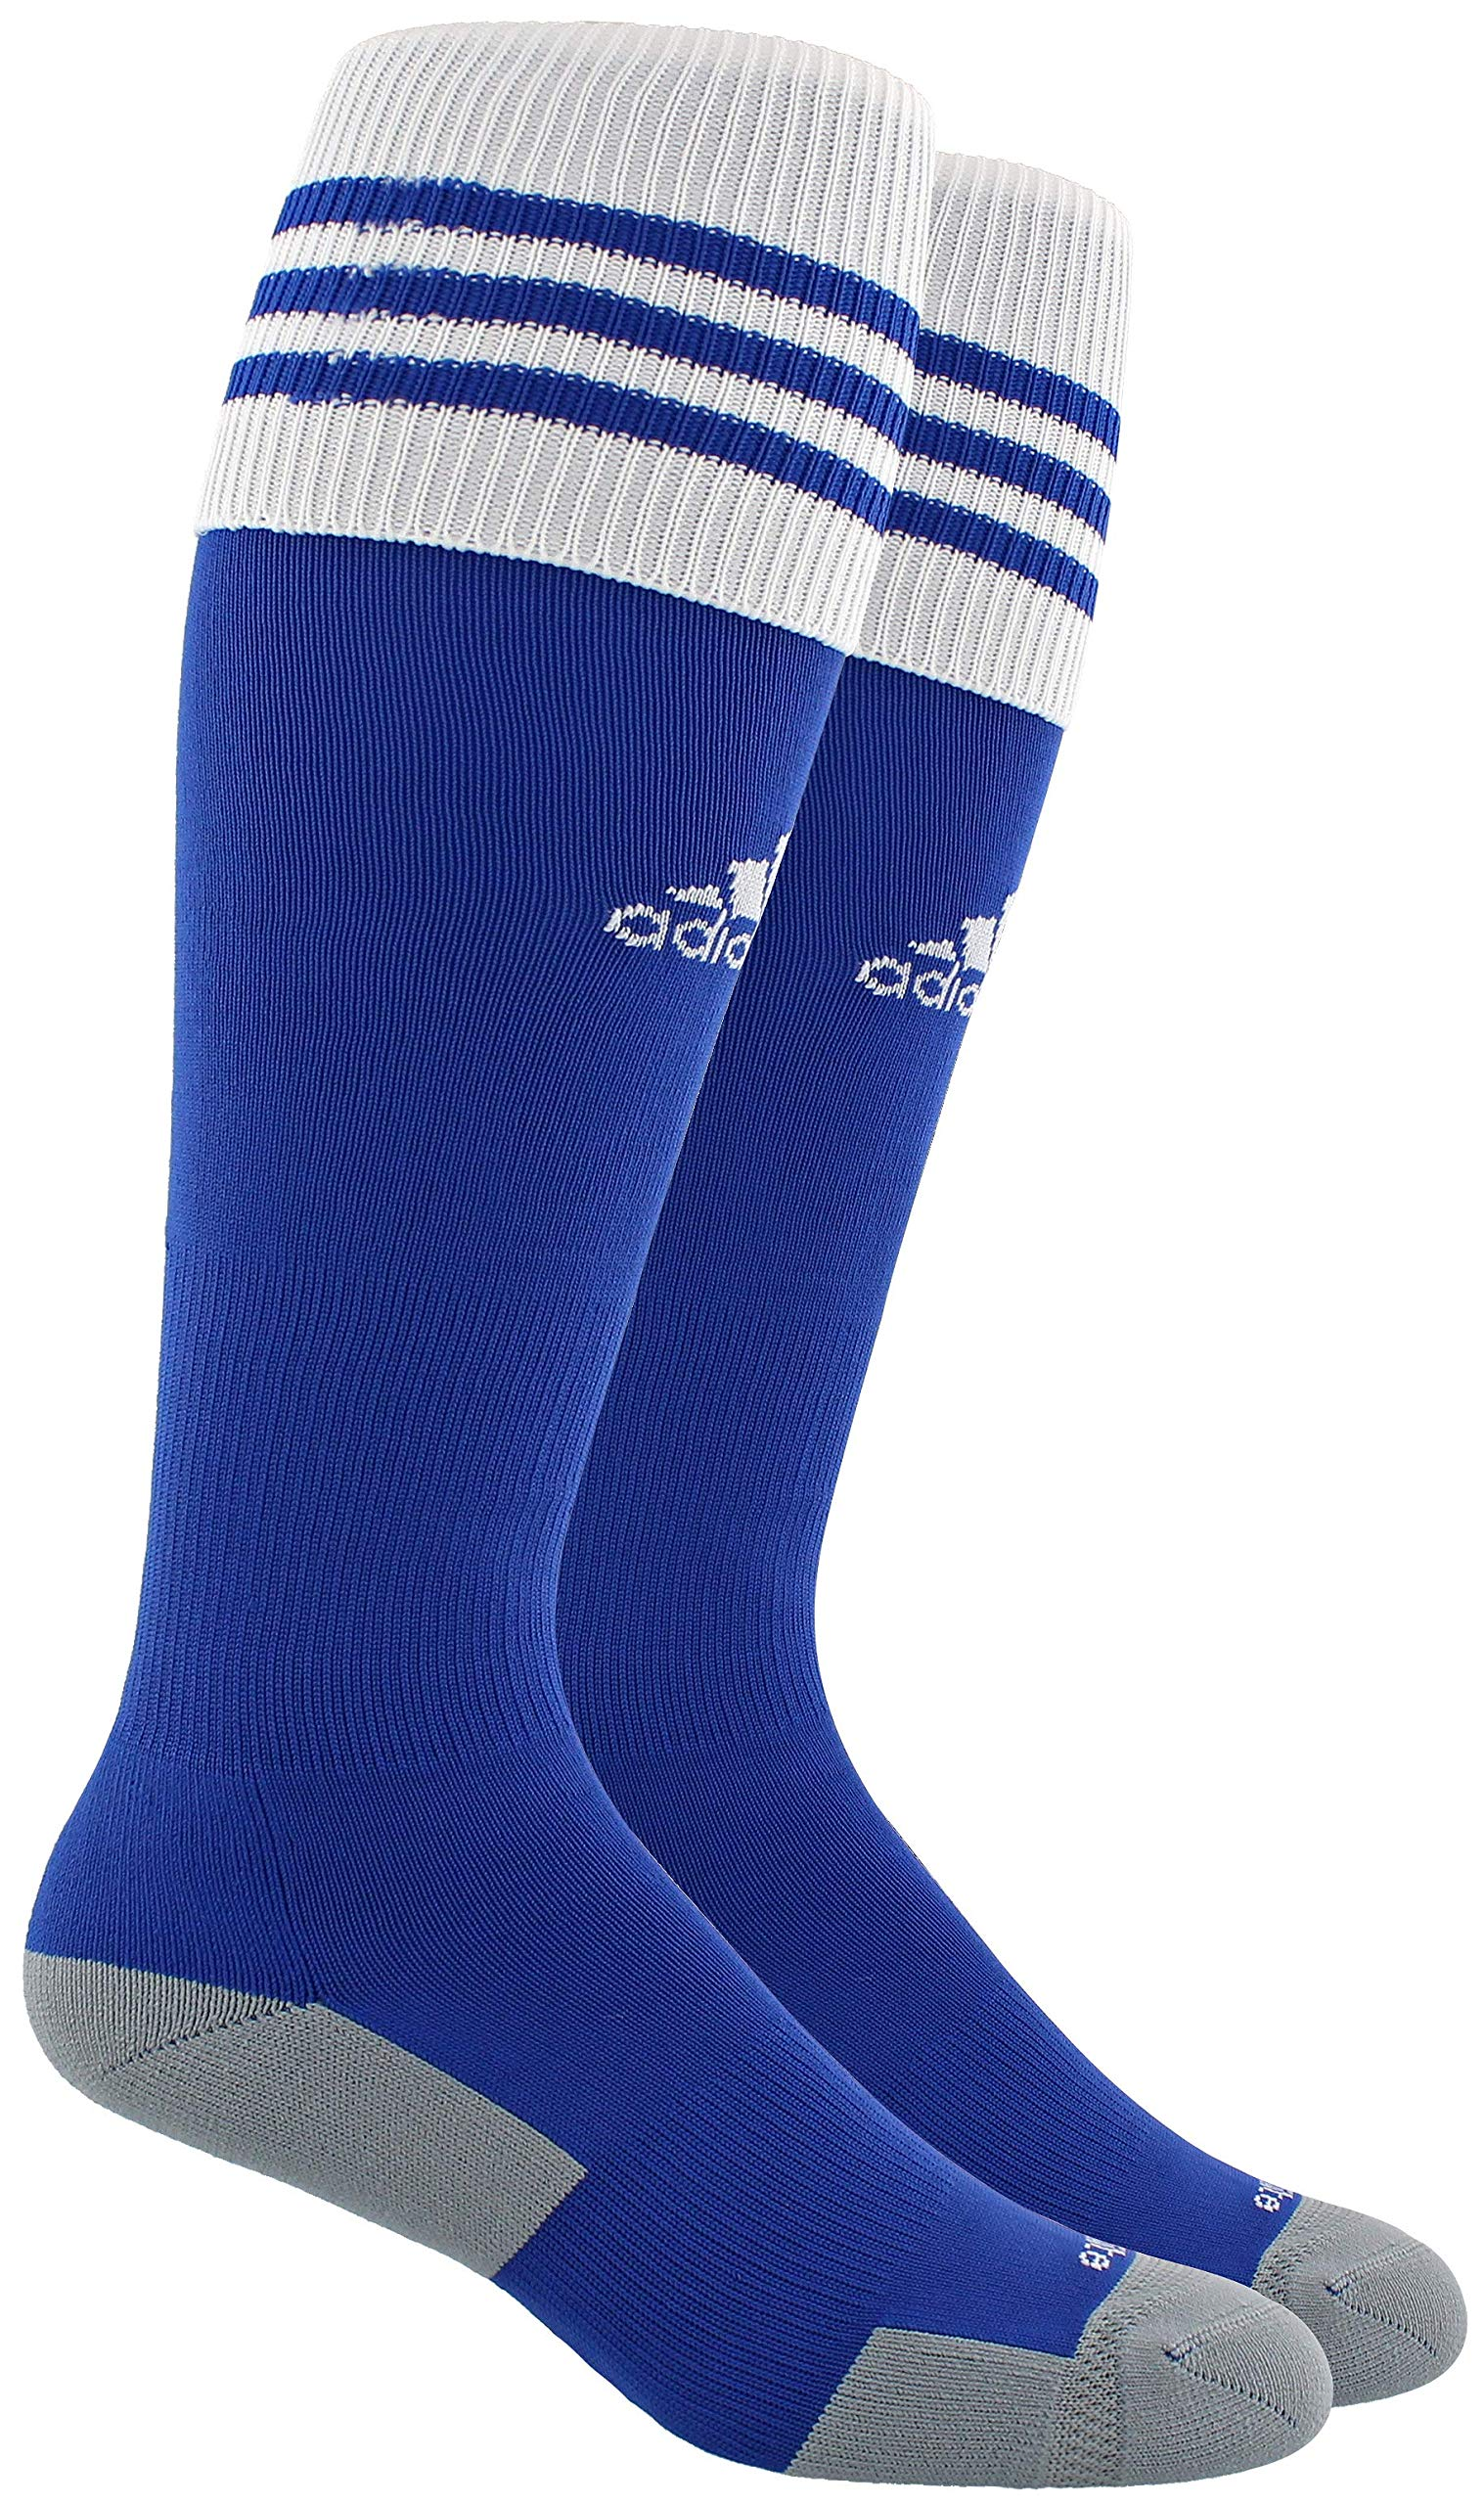 adidas Unisex Copa Zone Cushion II Soccer Sock (1-Pair), Cobalt/White, 13C-4Y by adidas